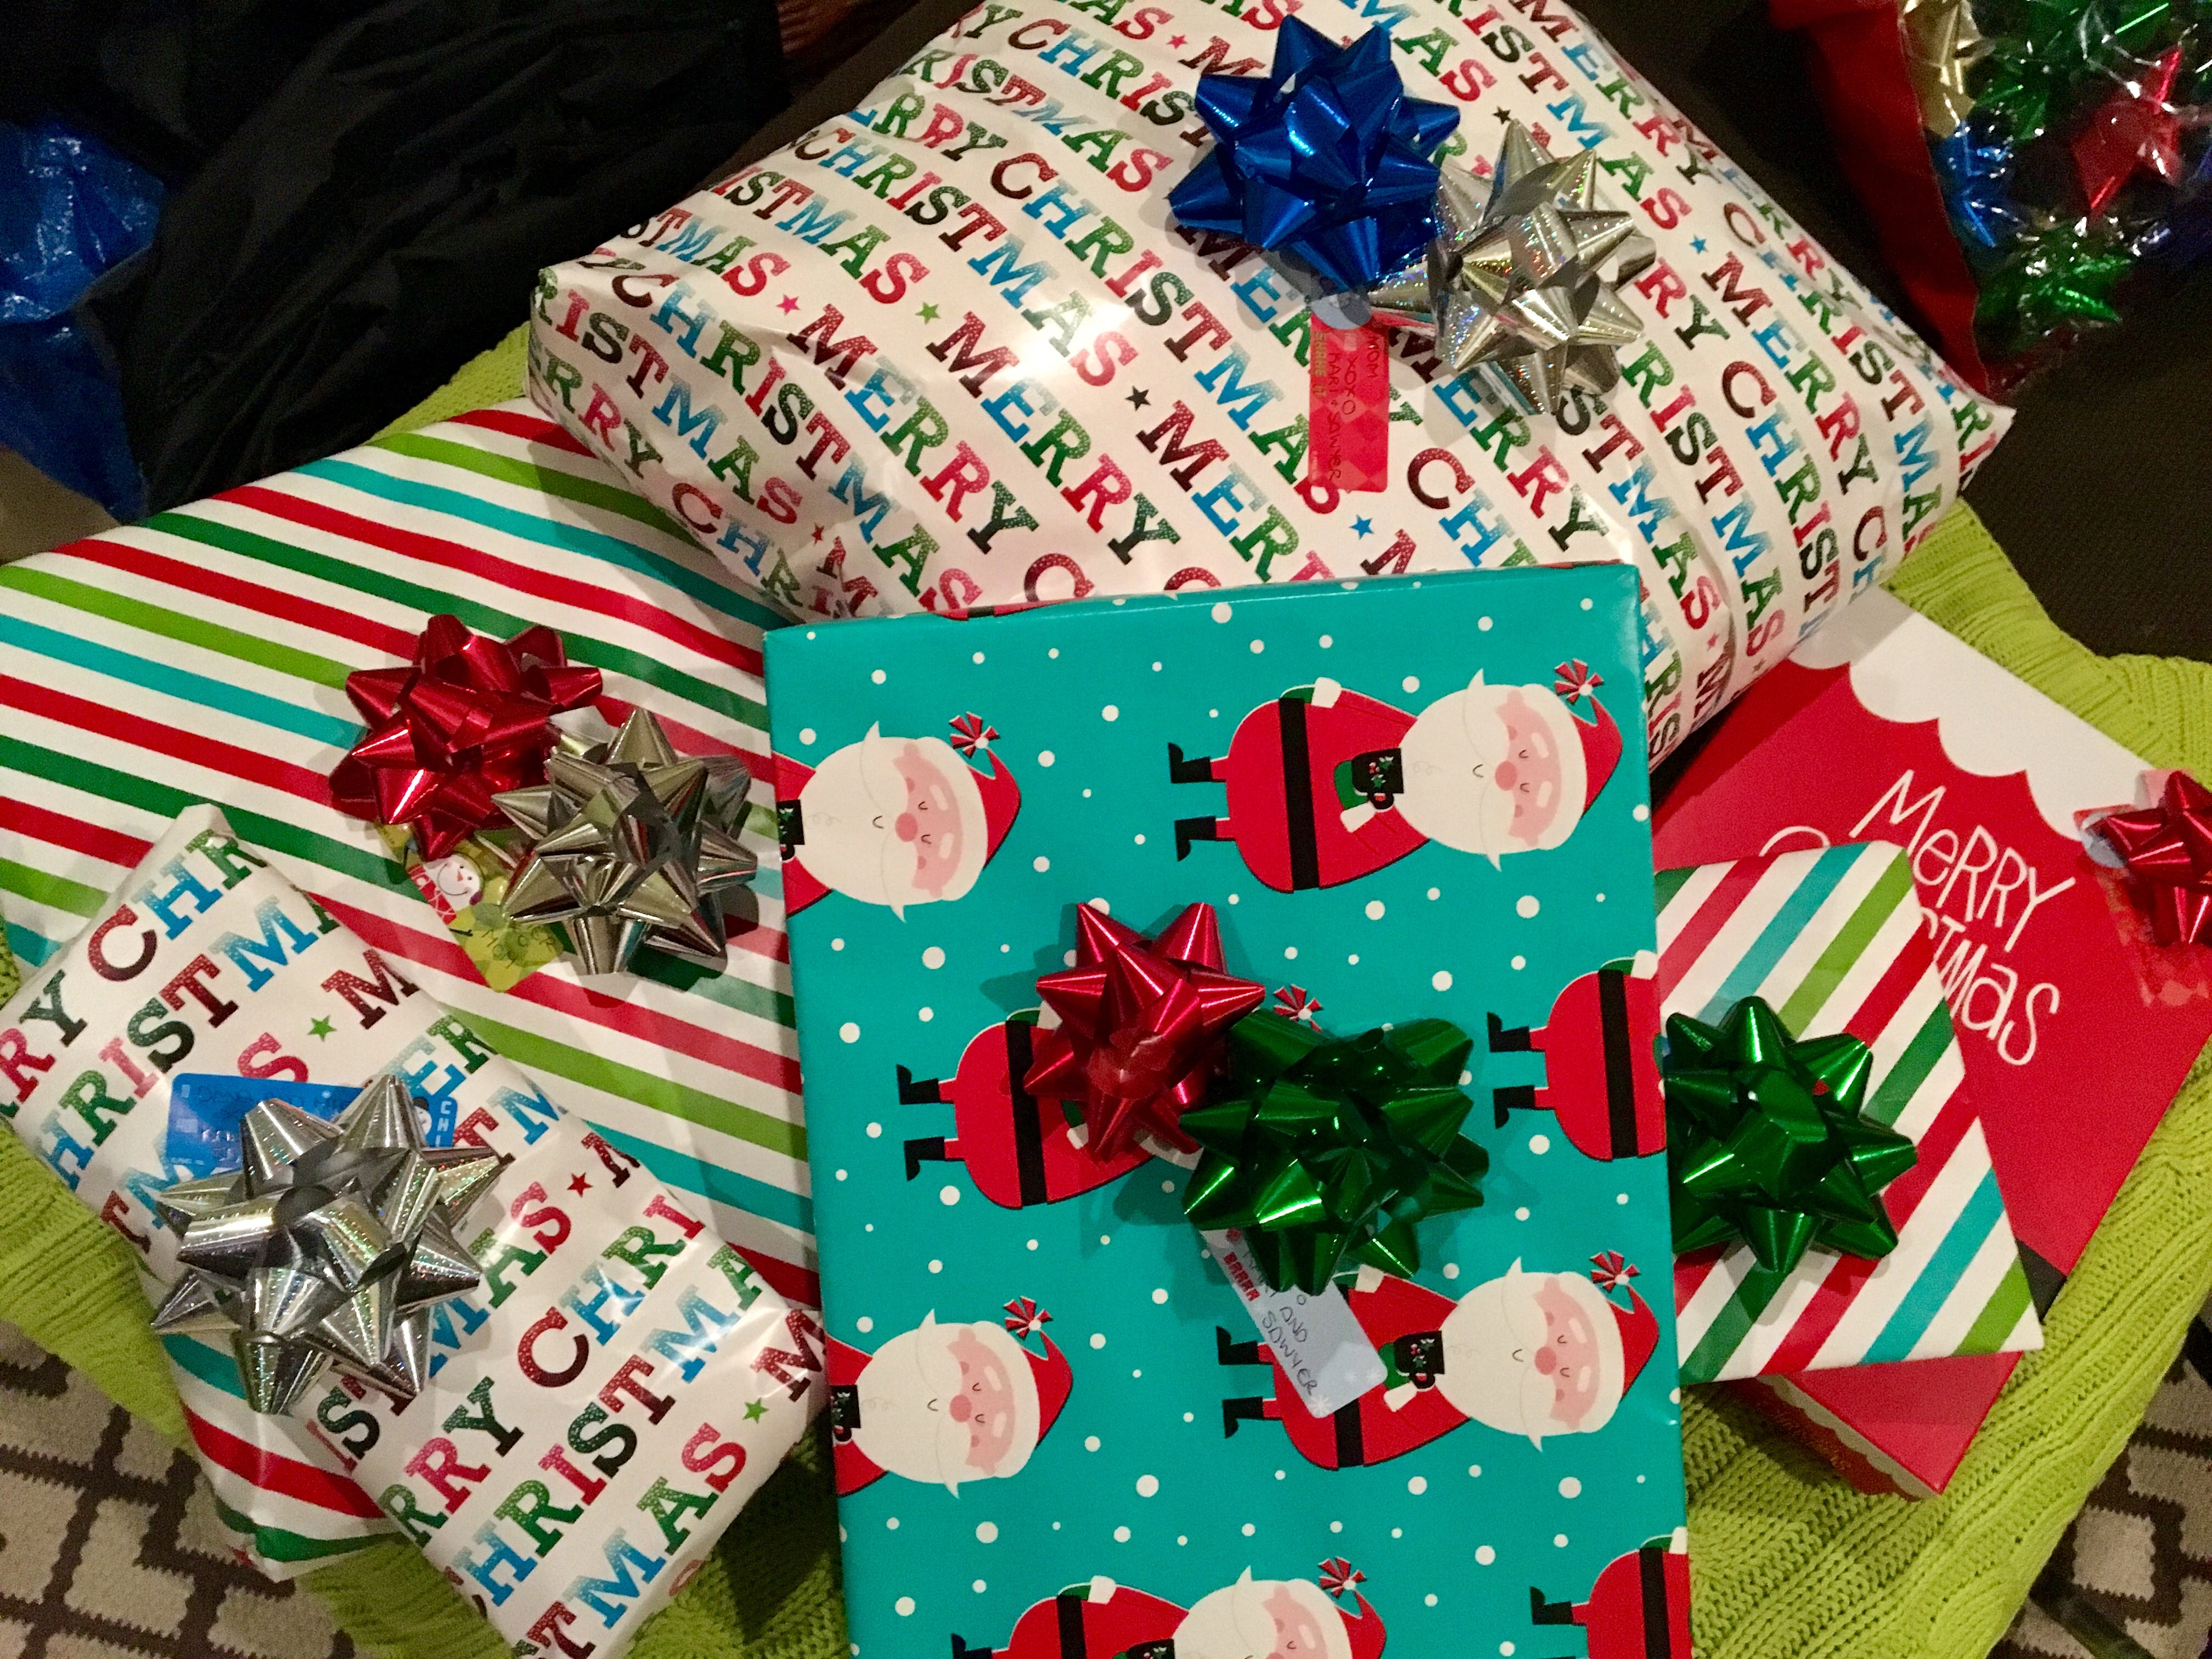 Wanna hide your kids' Christmas presents? Try the clothes hamper or (ewww) mom's underwear drawer